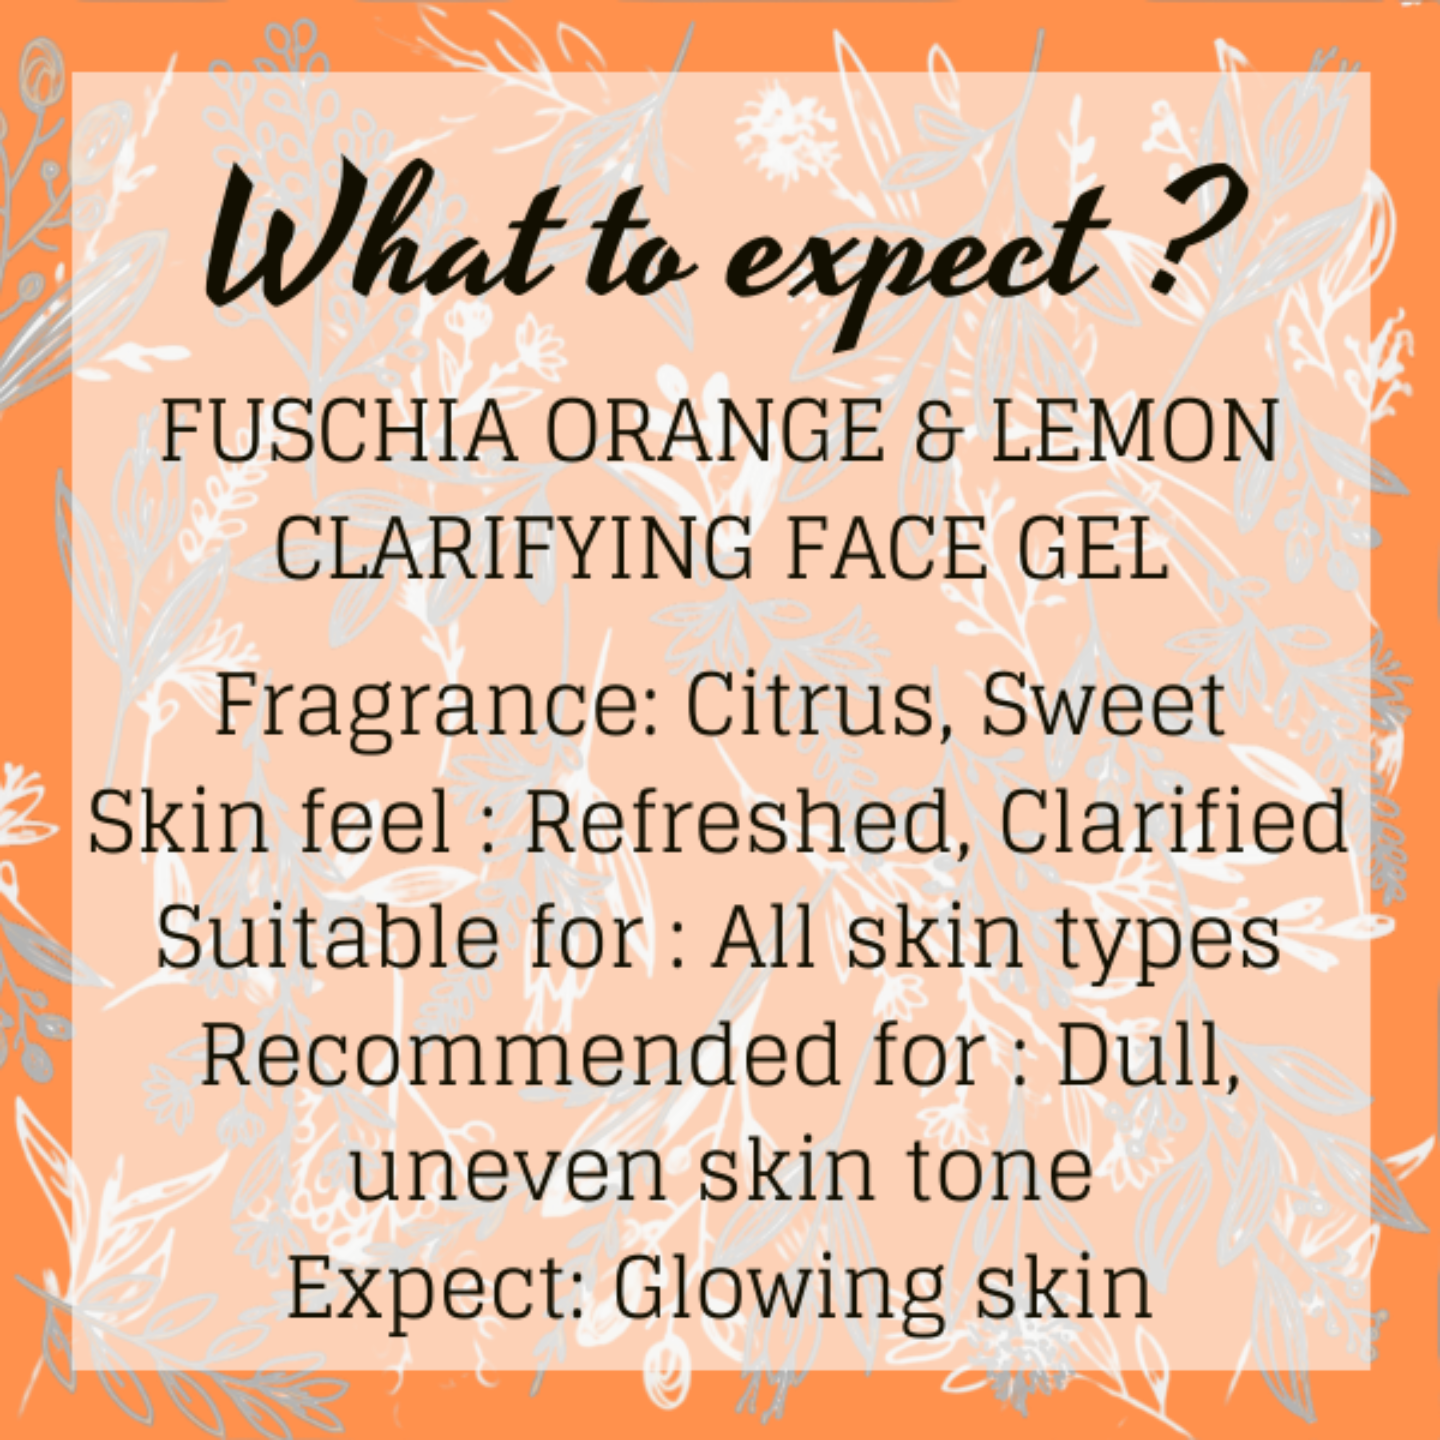 Fuschia Clarifying Face Gel - Orange & Lemon - 100g